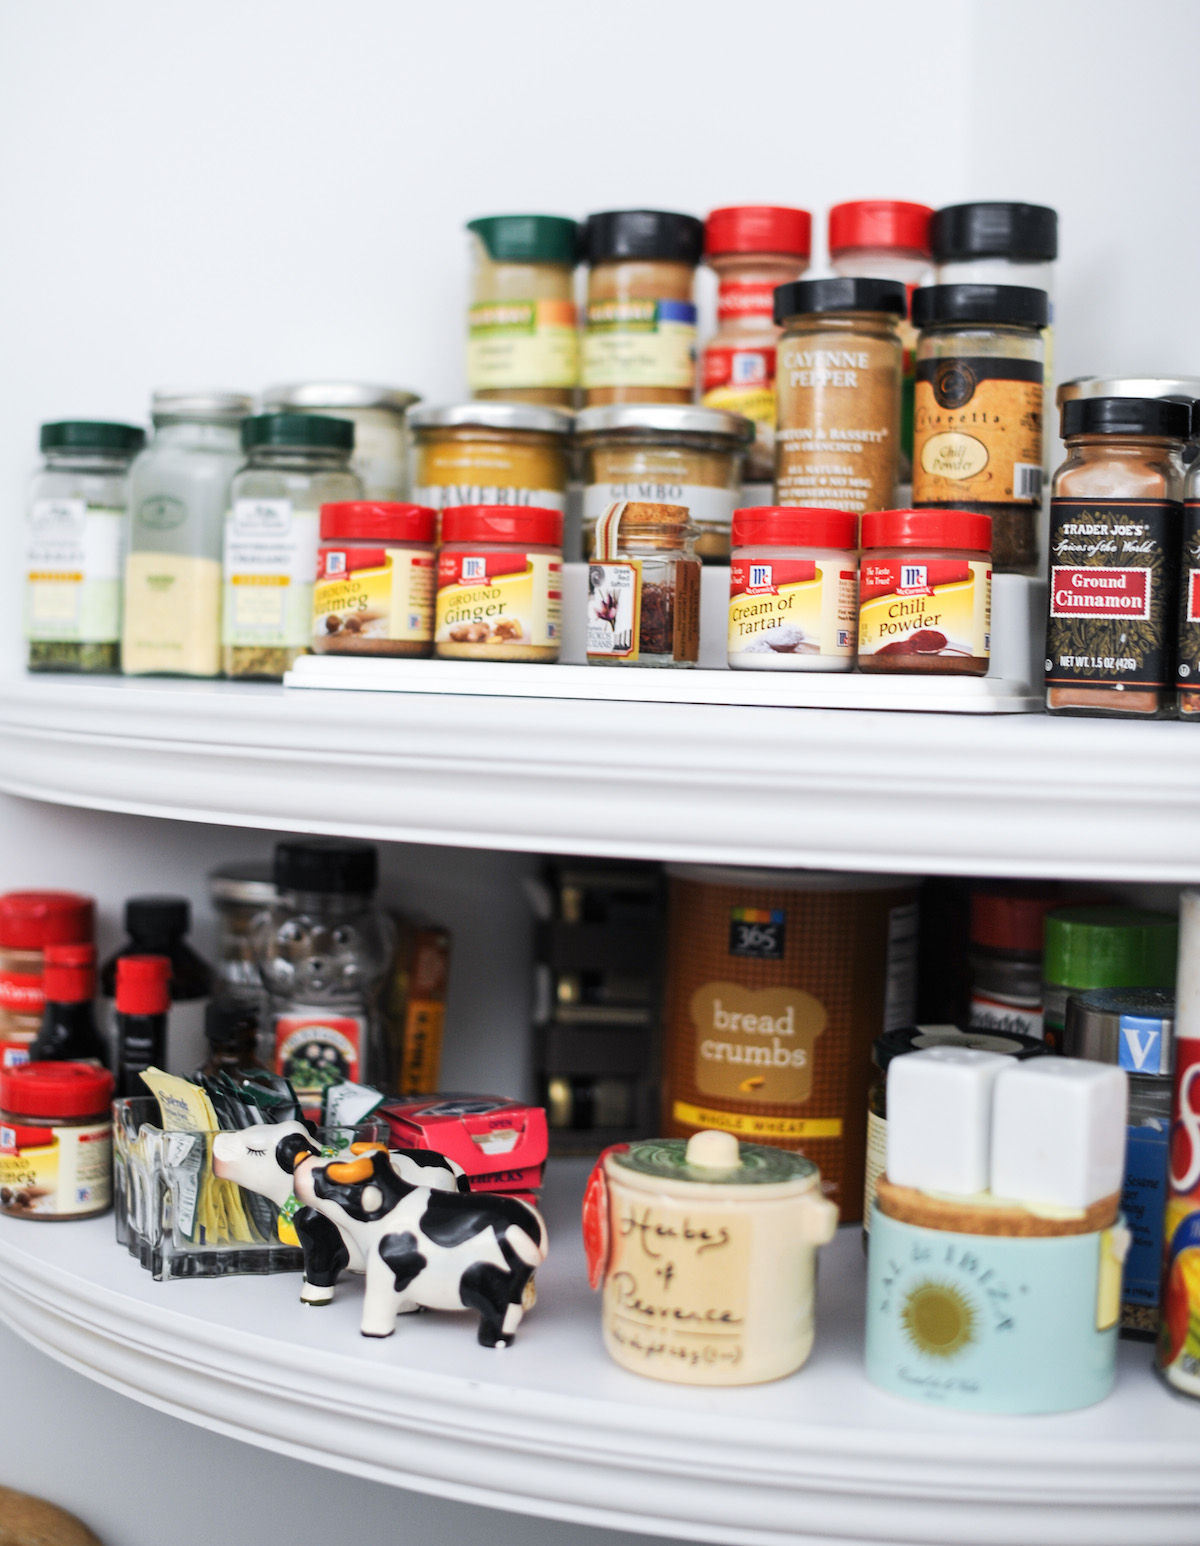 DIY Spice Rack project